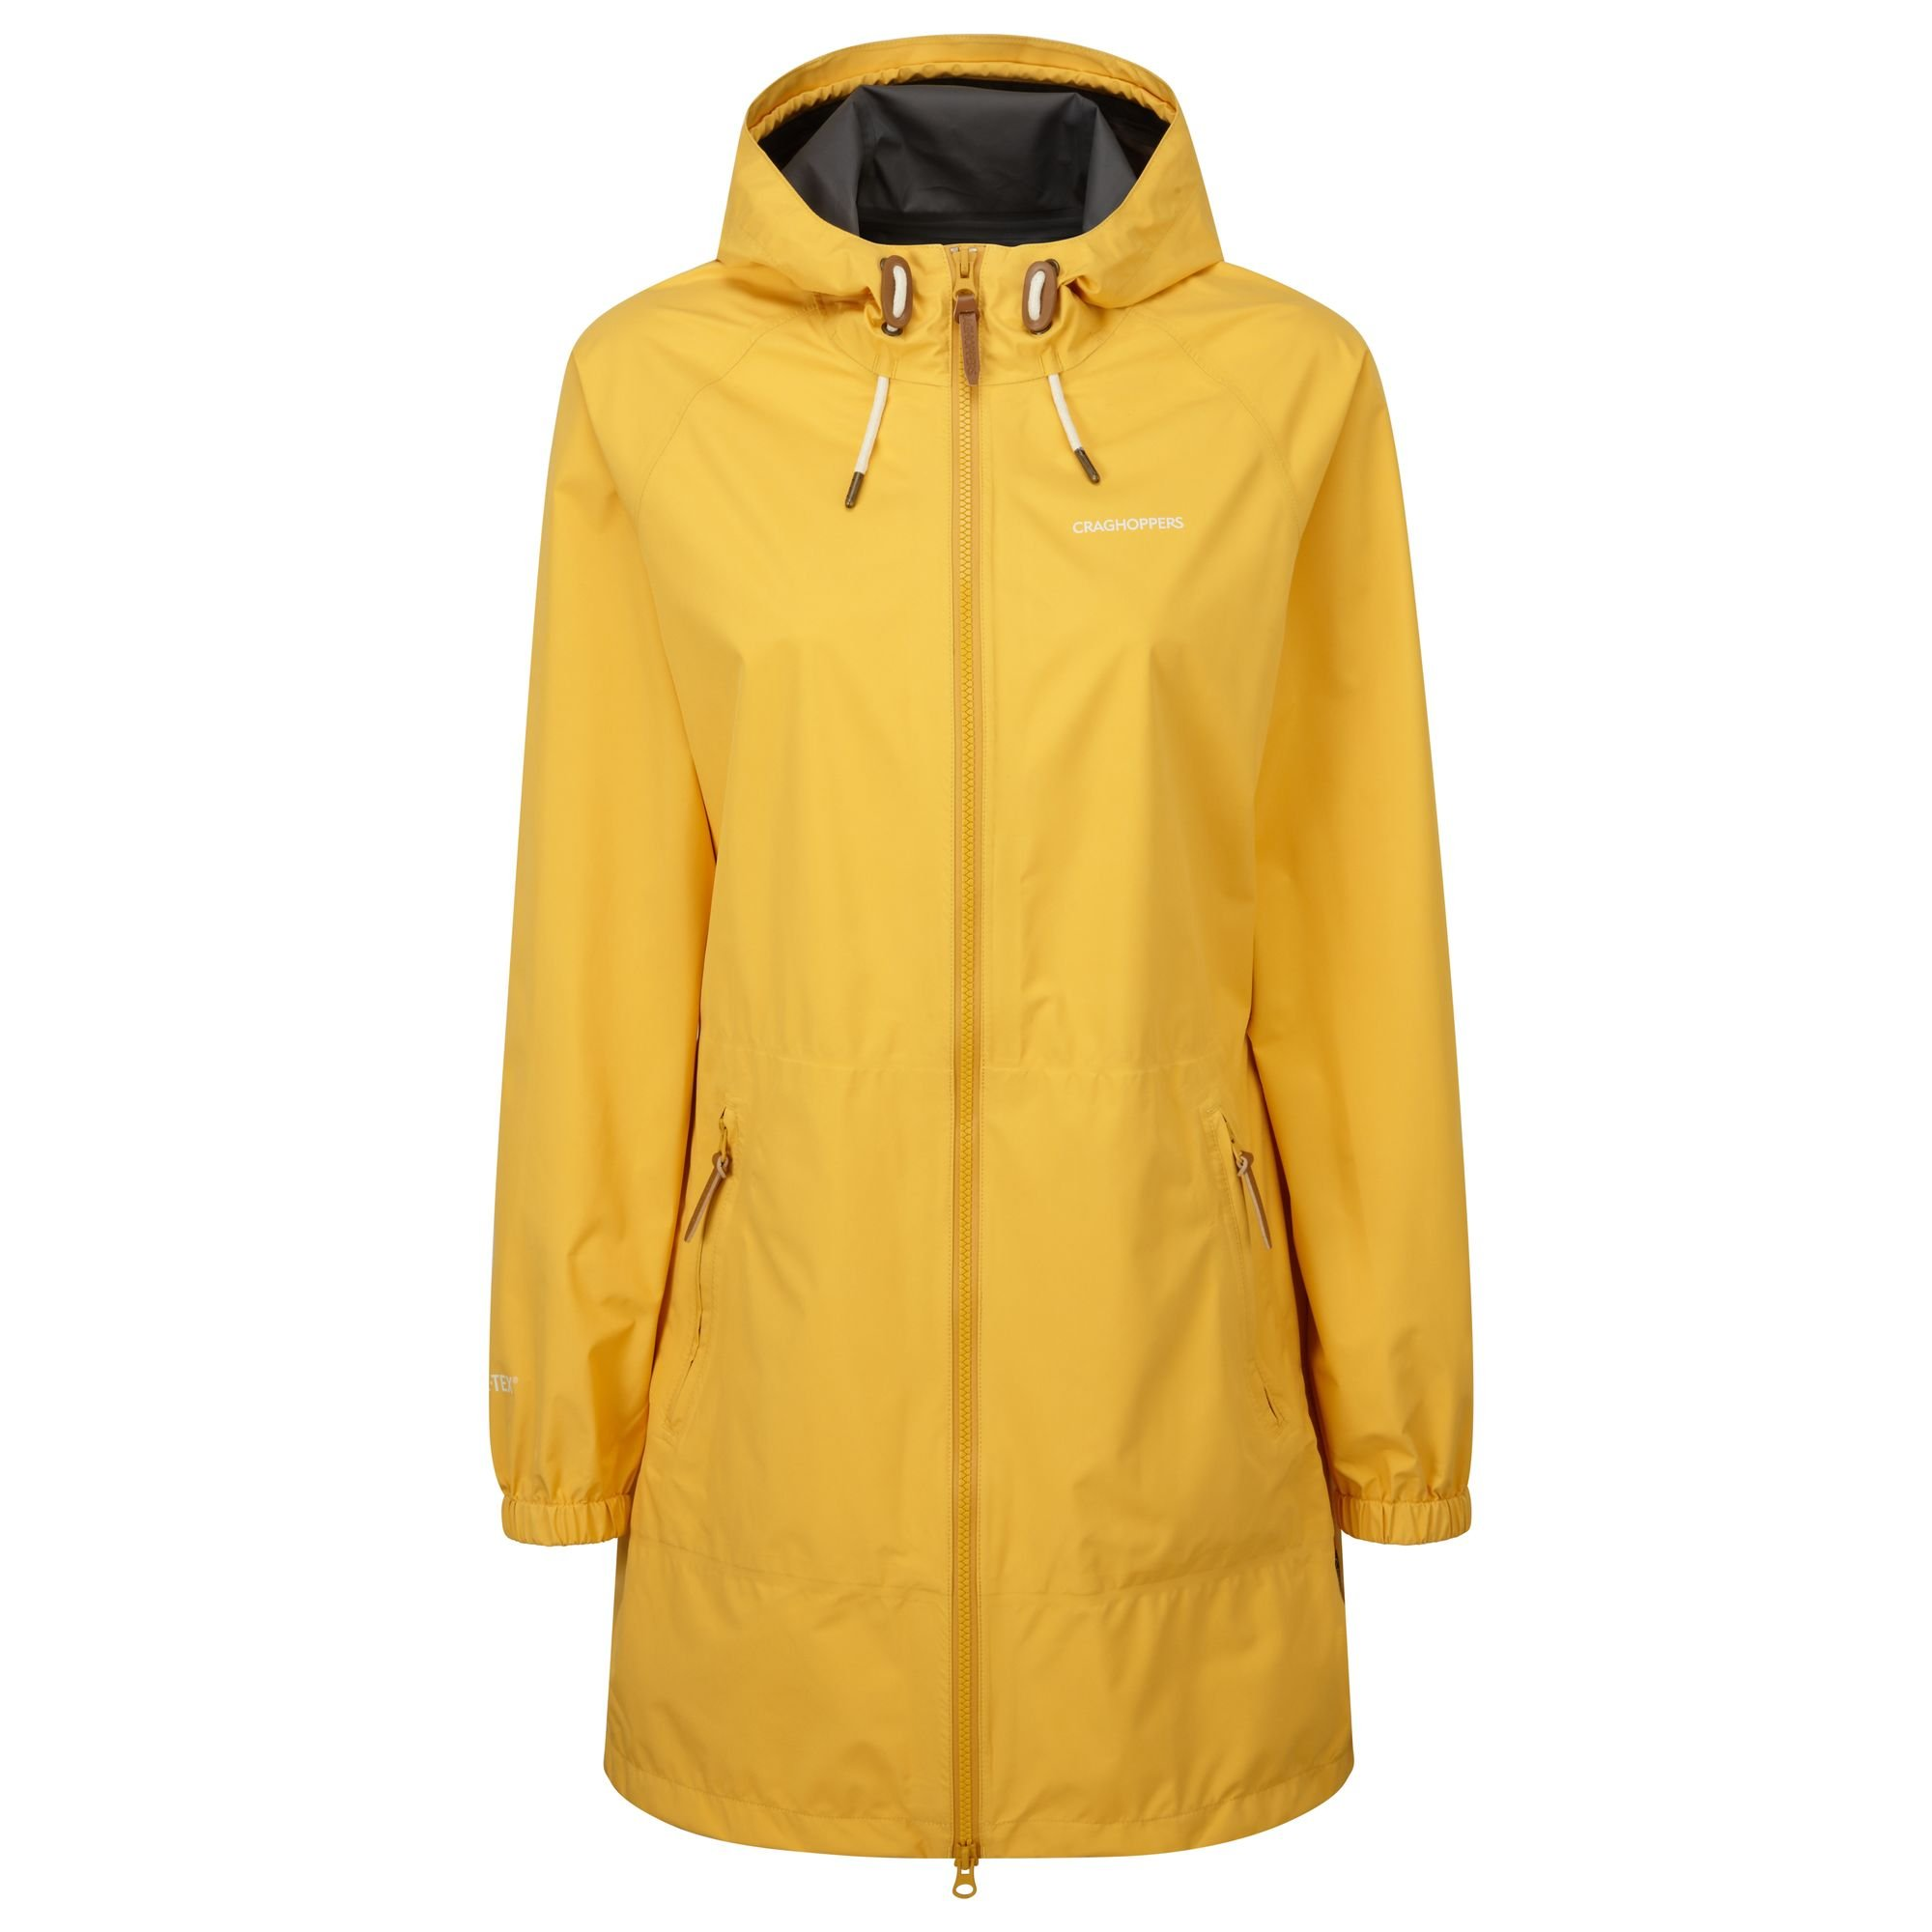 Craghoppers Womens/Ladies Sofia Gore-TEX Paclite Waterproof Jacket (16) (Summer Gold)